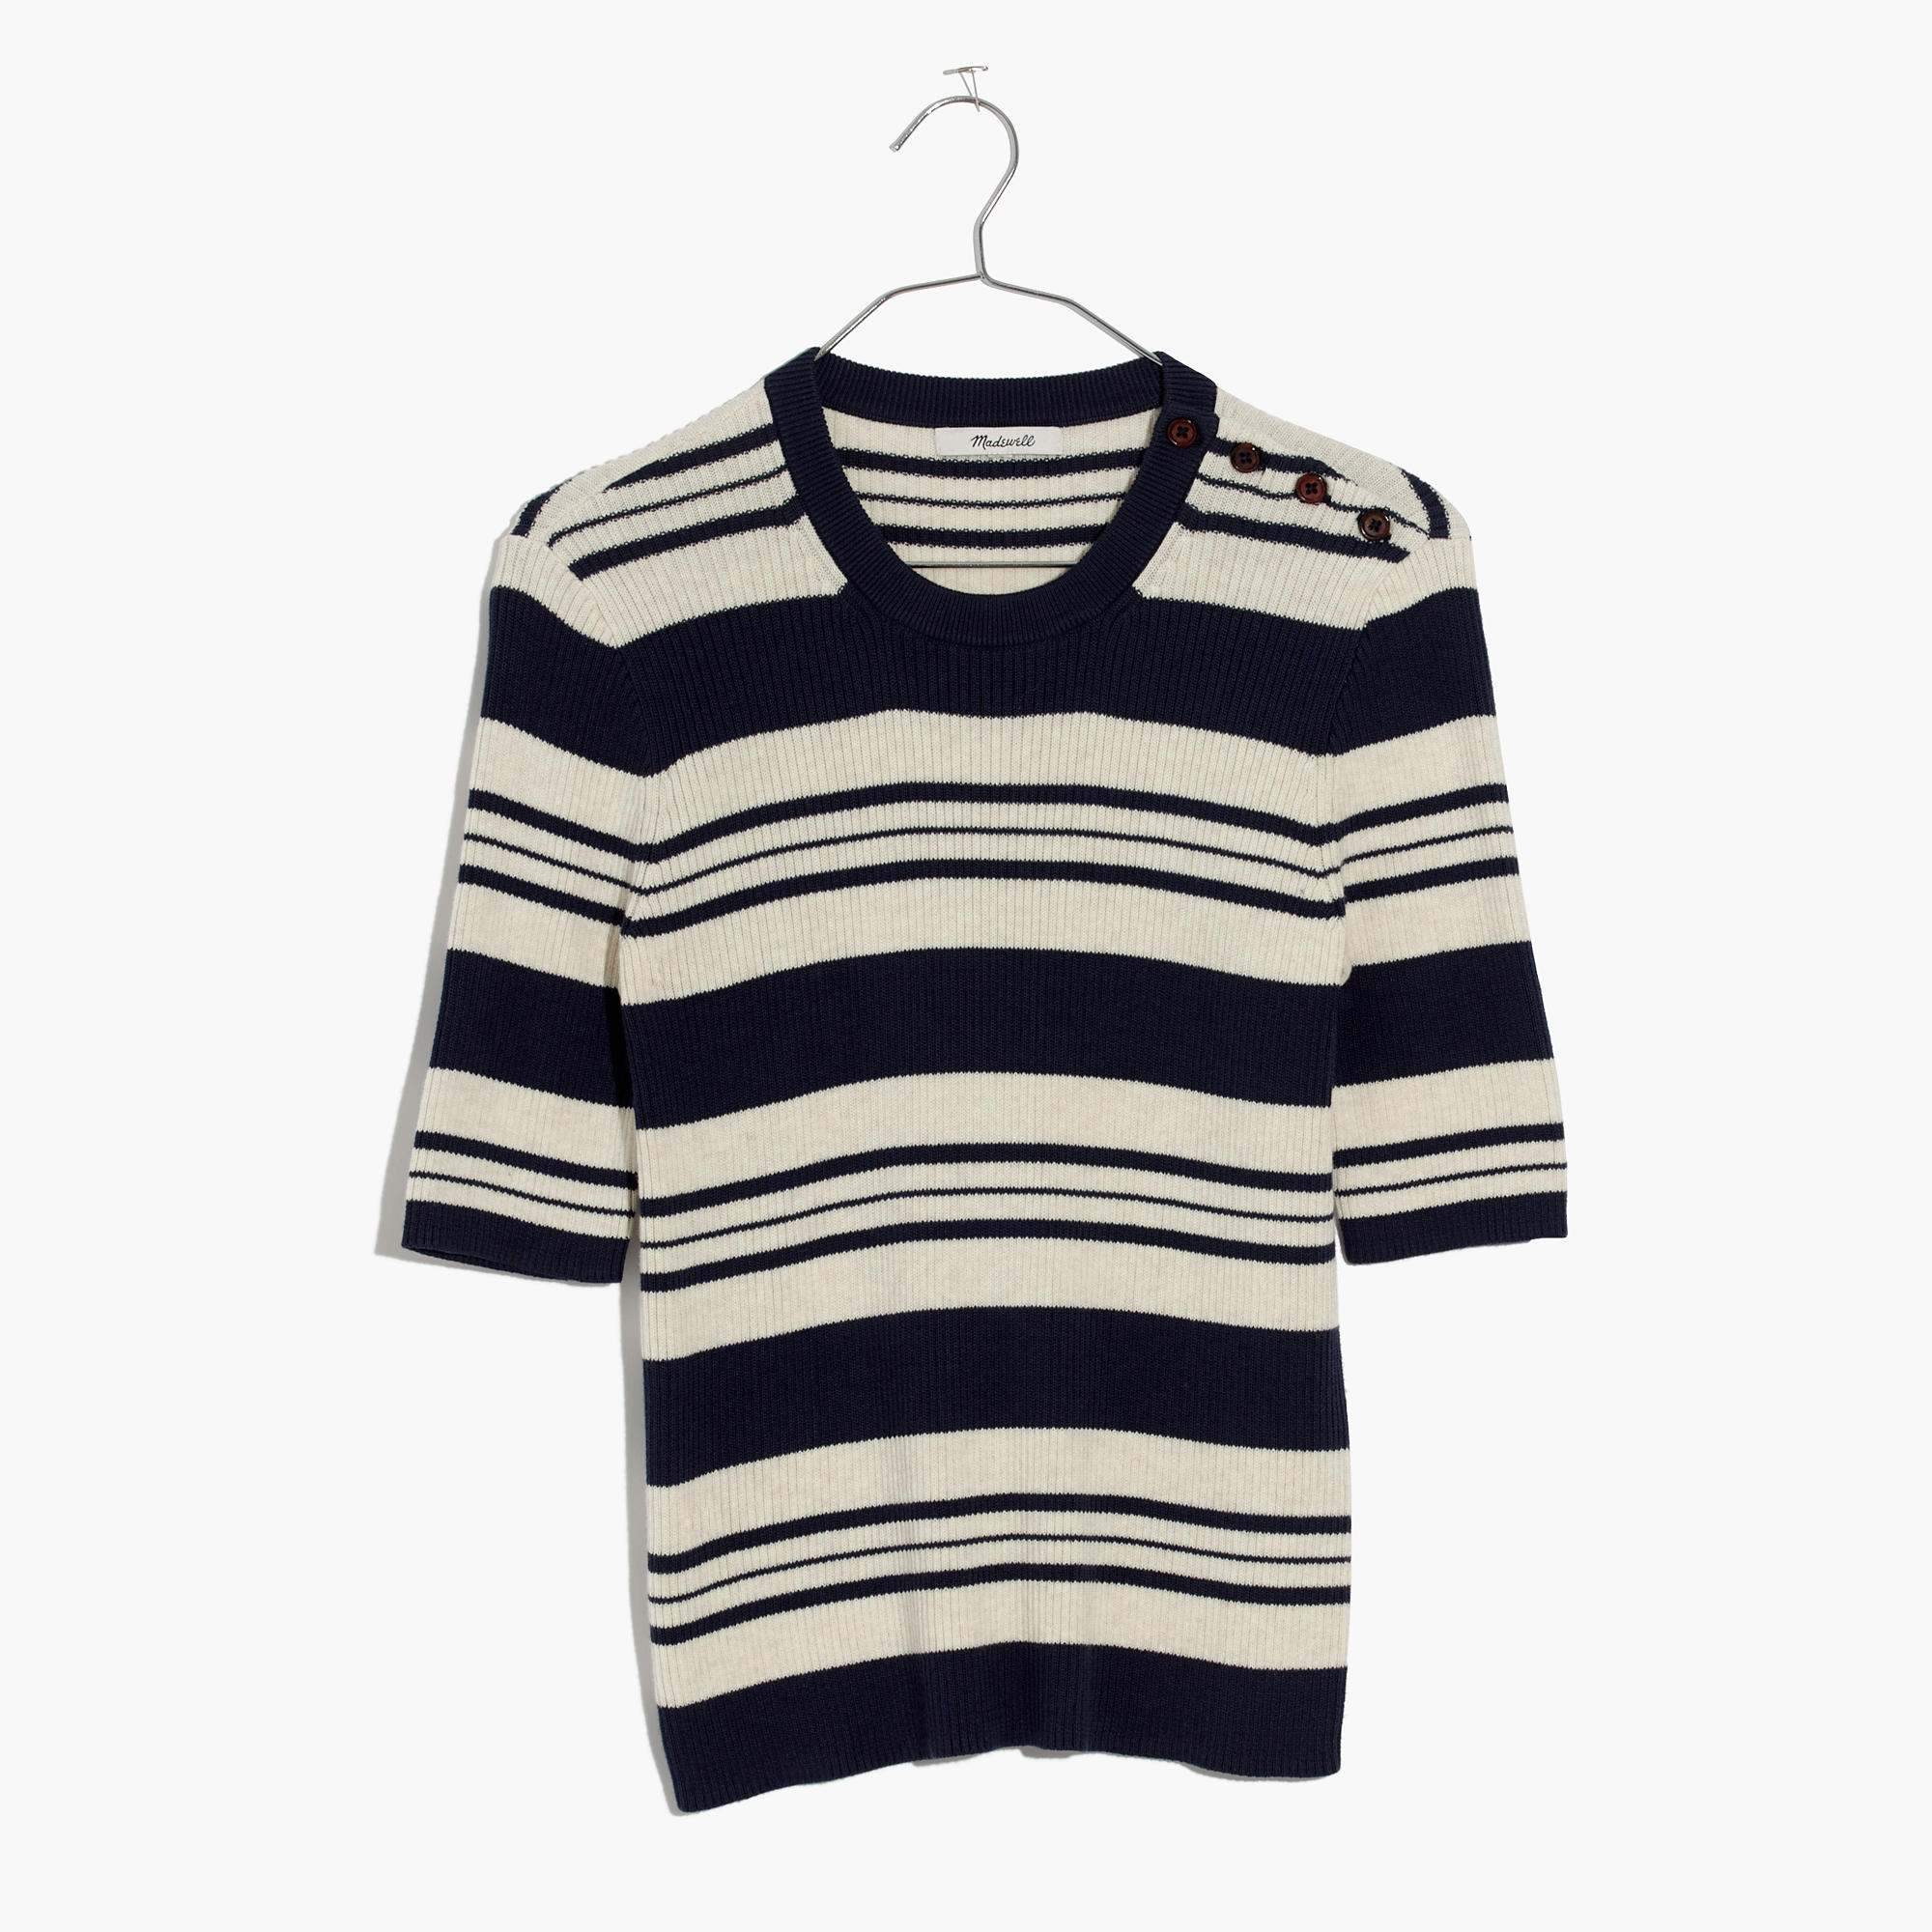 Ribbed Sweater Top in Stripe : | Madewell